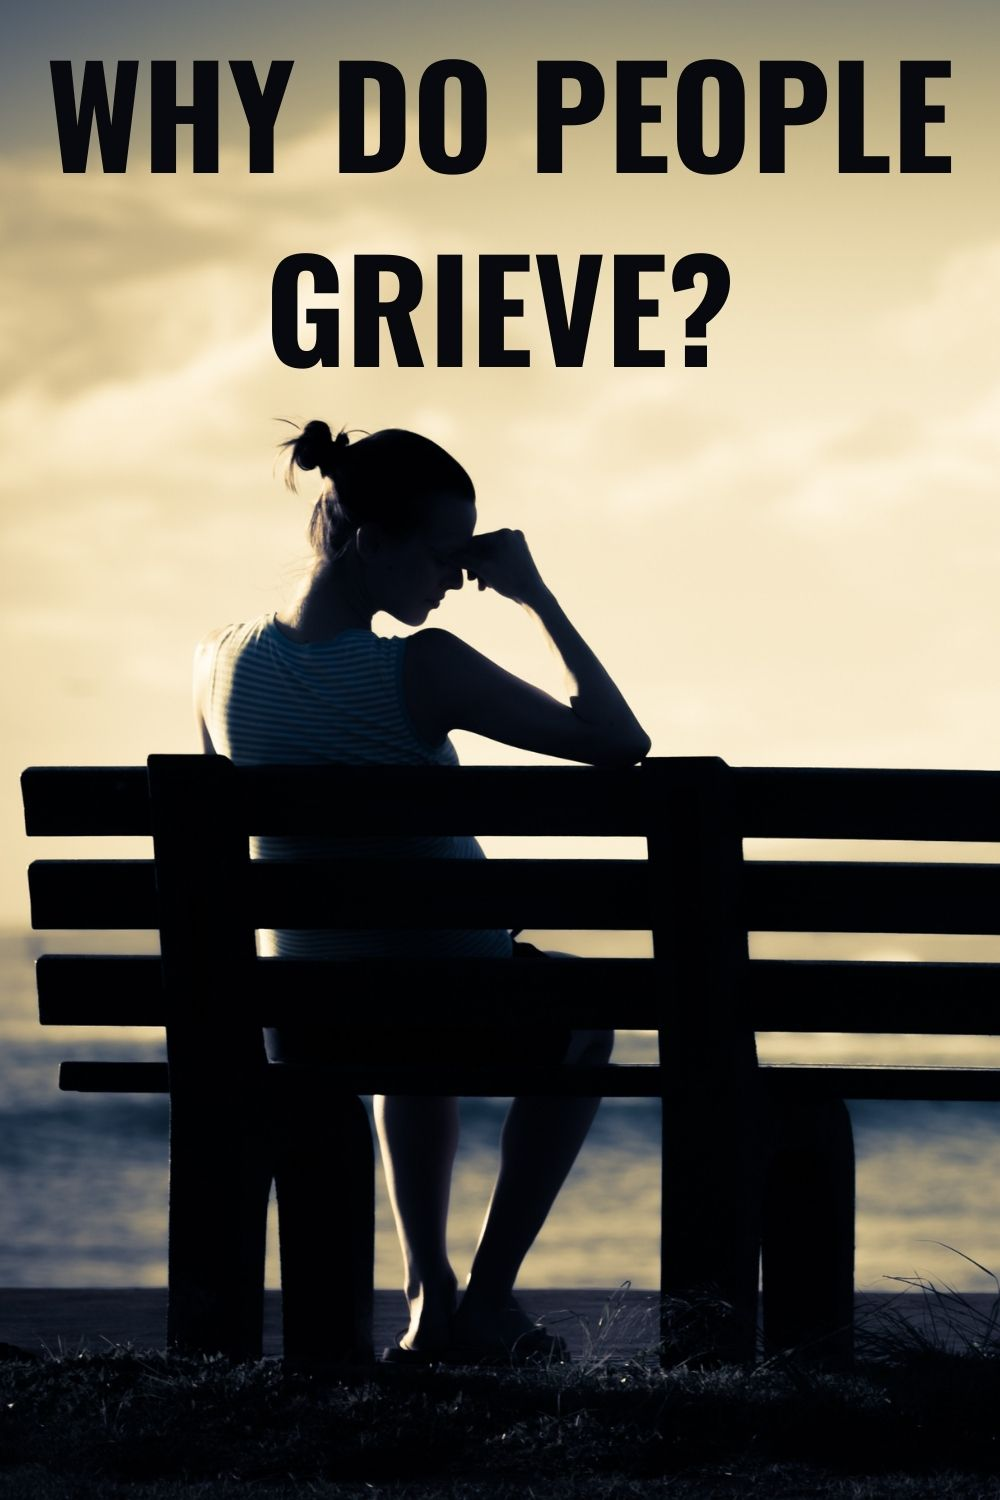 Why do people grieve?